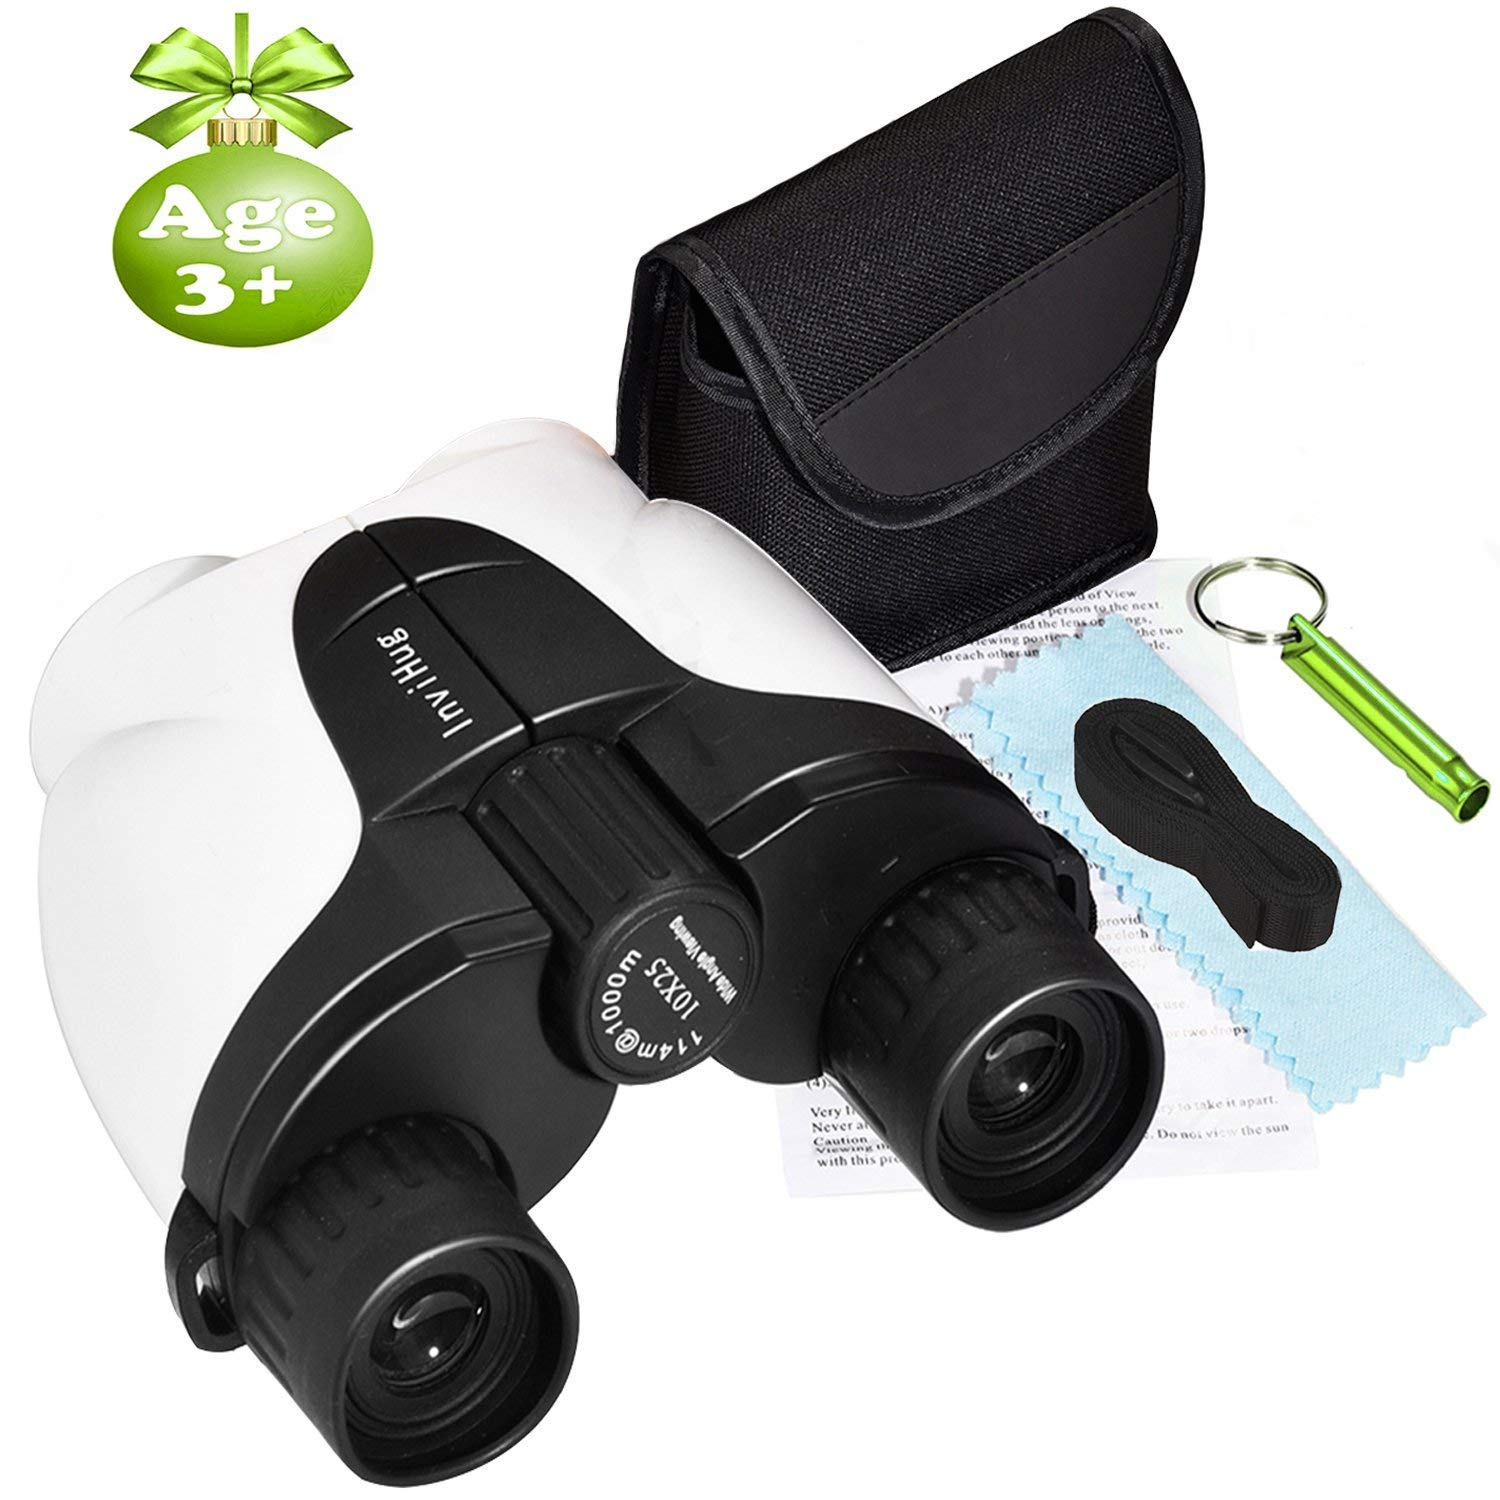 Petask Kids Binoculars, 10x25 Compact Outdoor Binocs Toys with Weak Light Night Vision for Bird Watching, Camping, Hunting